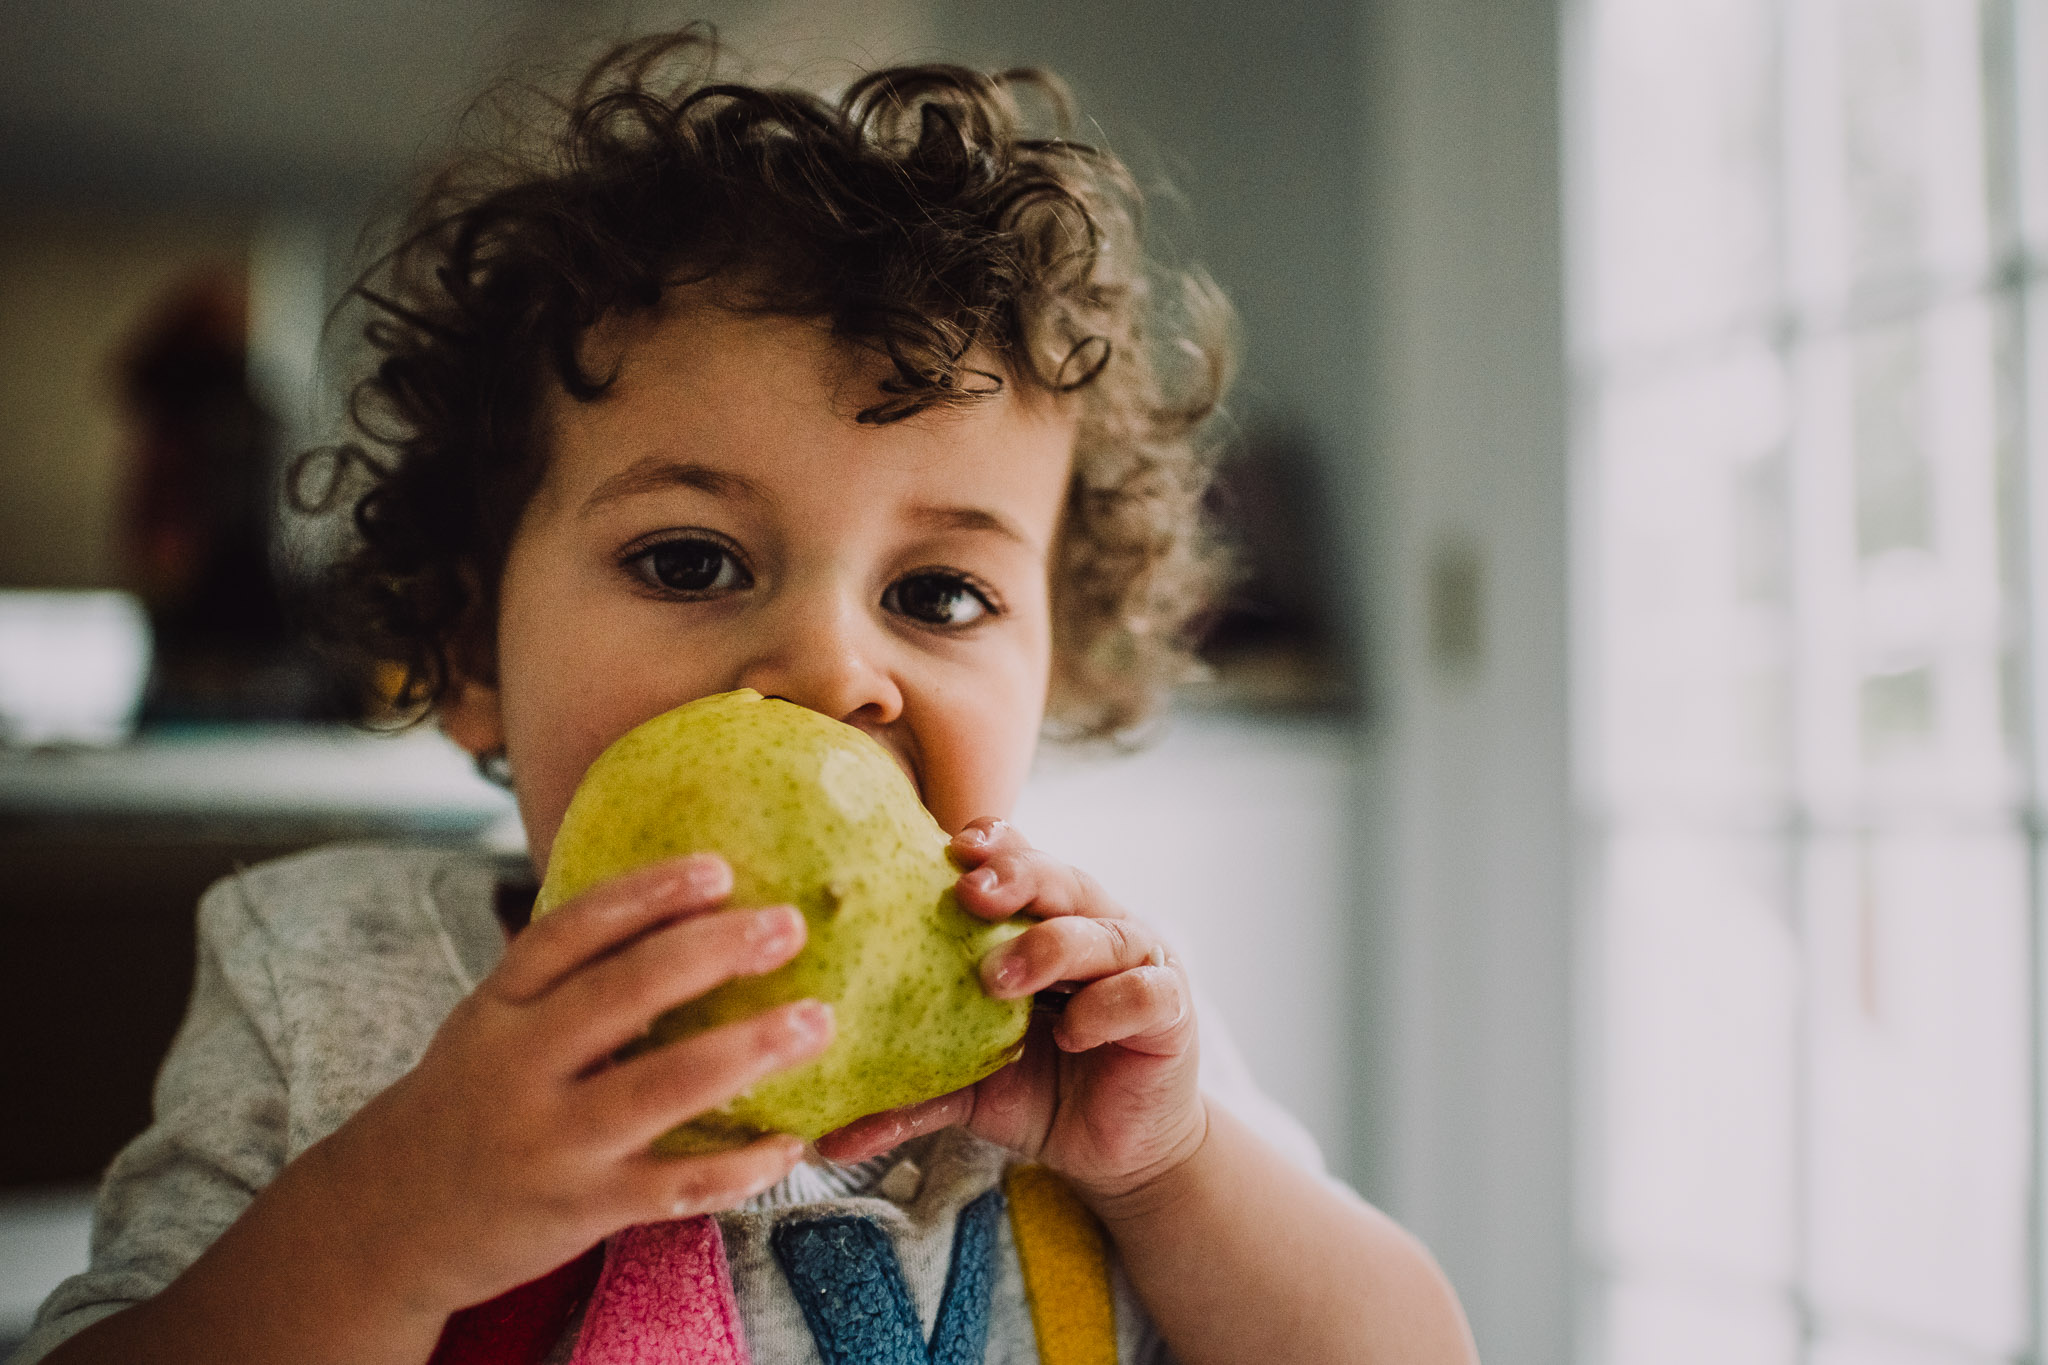 Day 3: She loves her pears.